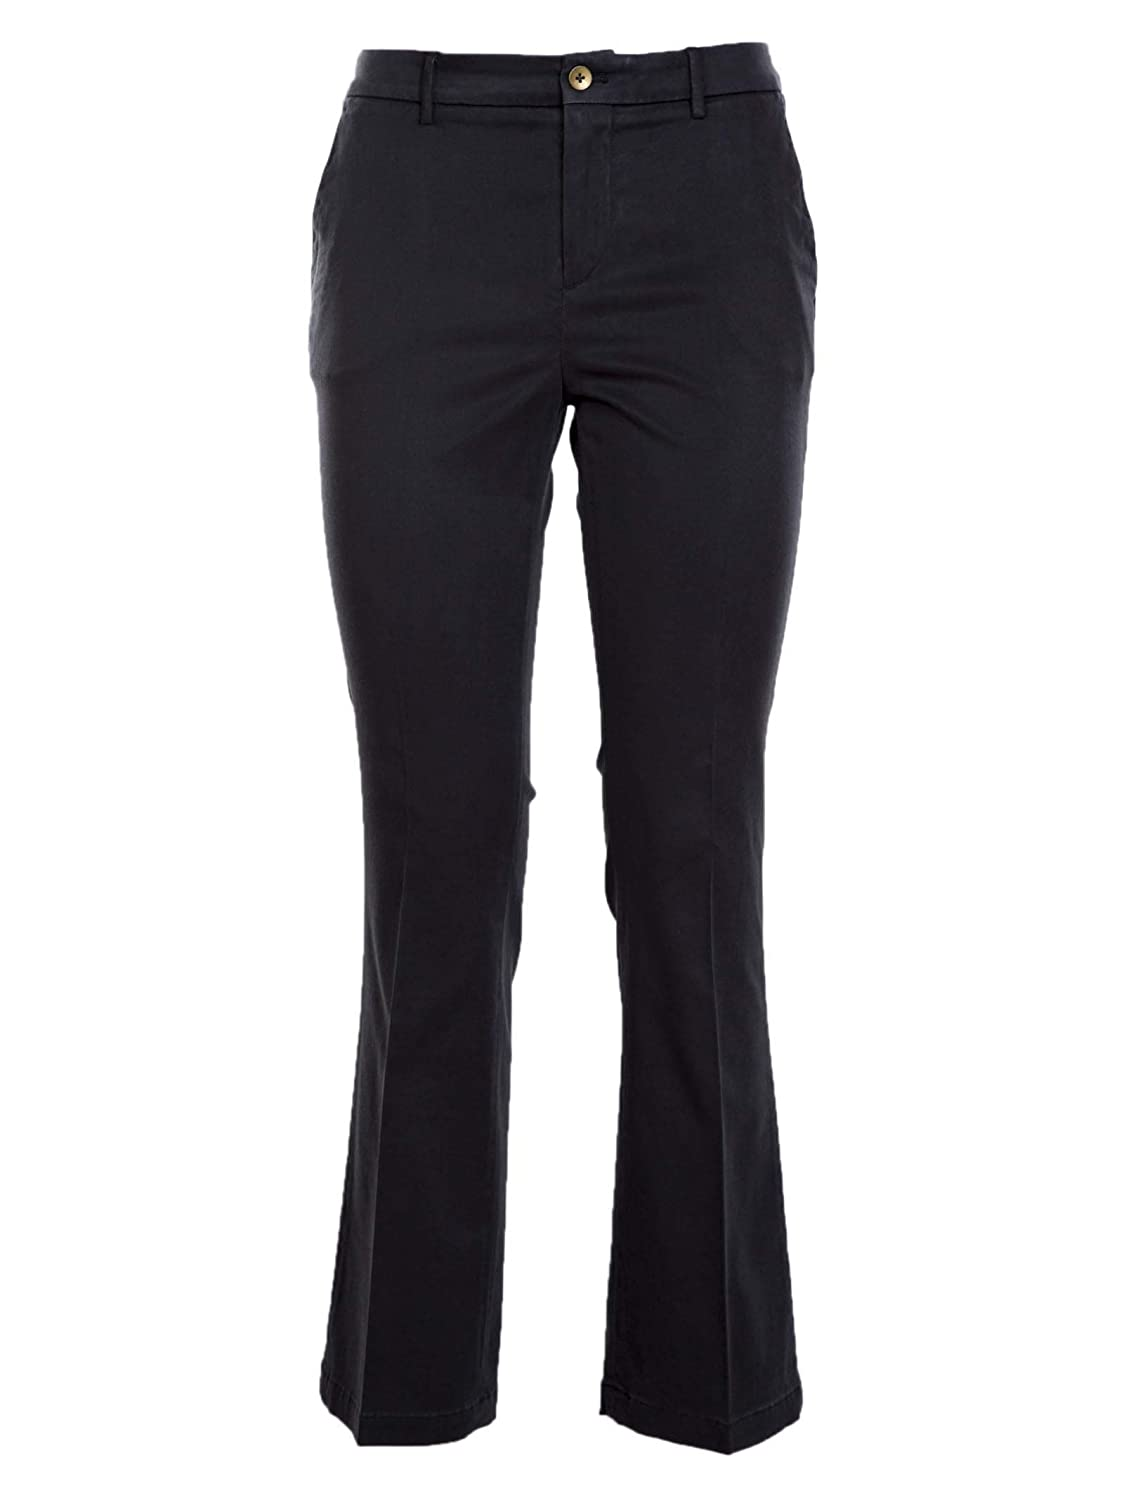 Pt01 Women's VTJAZ00STDSLIM0360 Black Cotton Pants